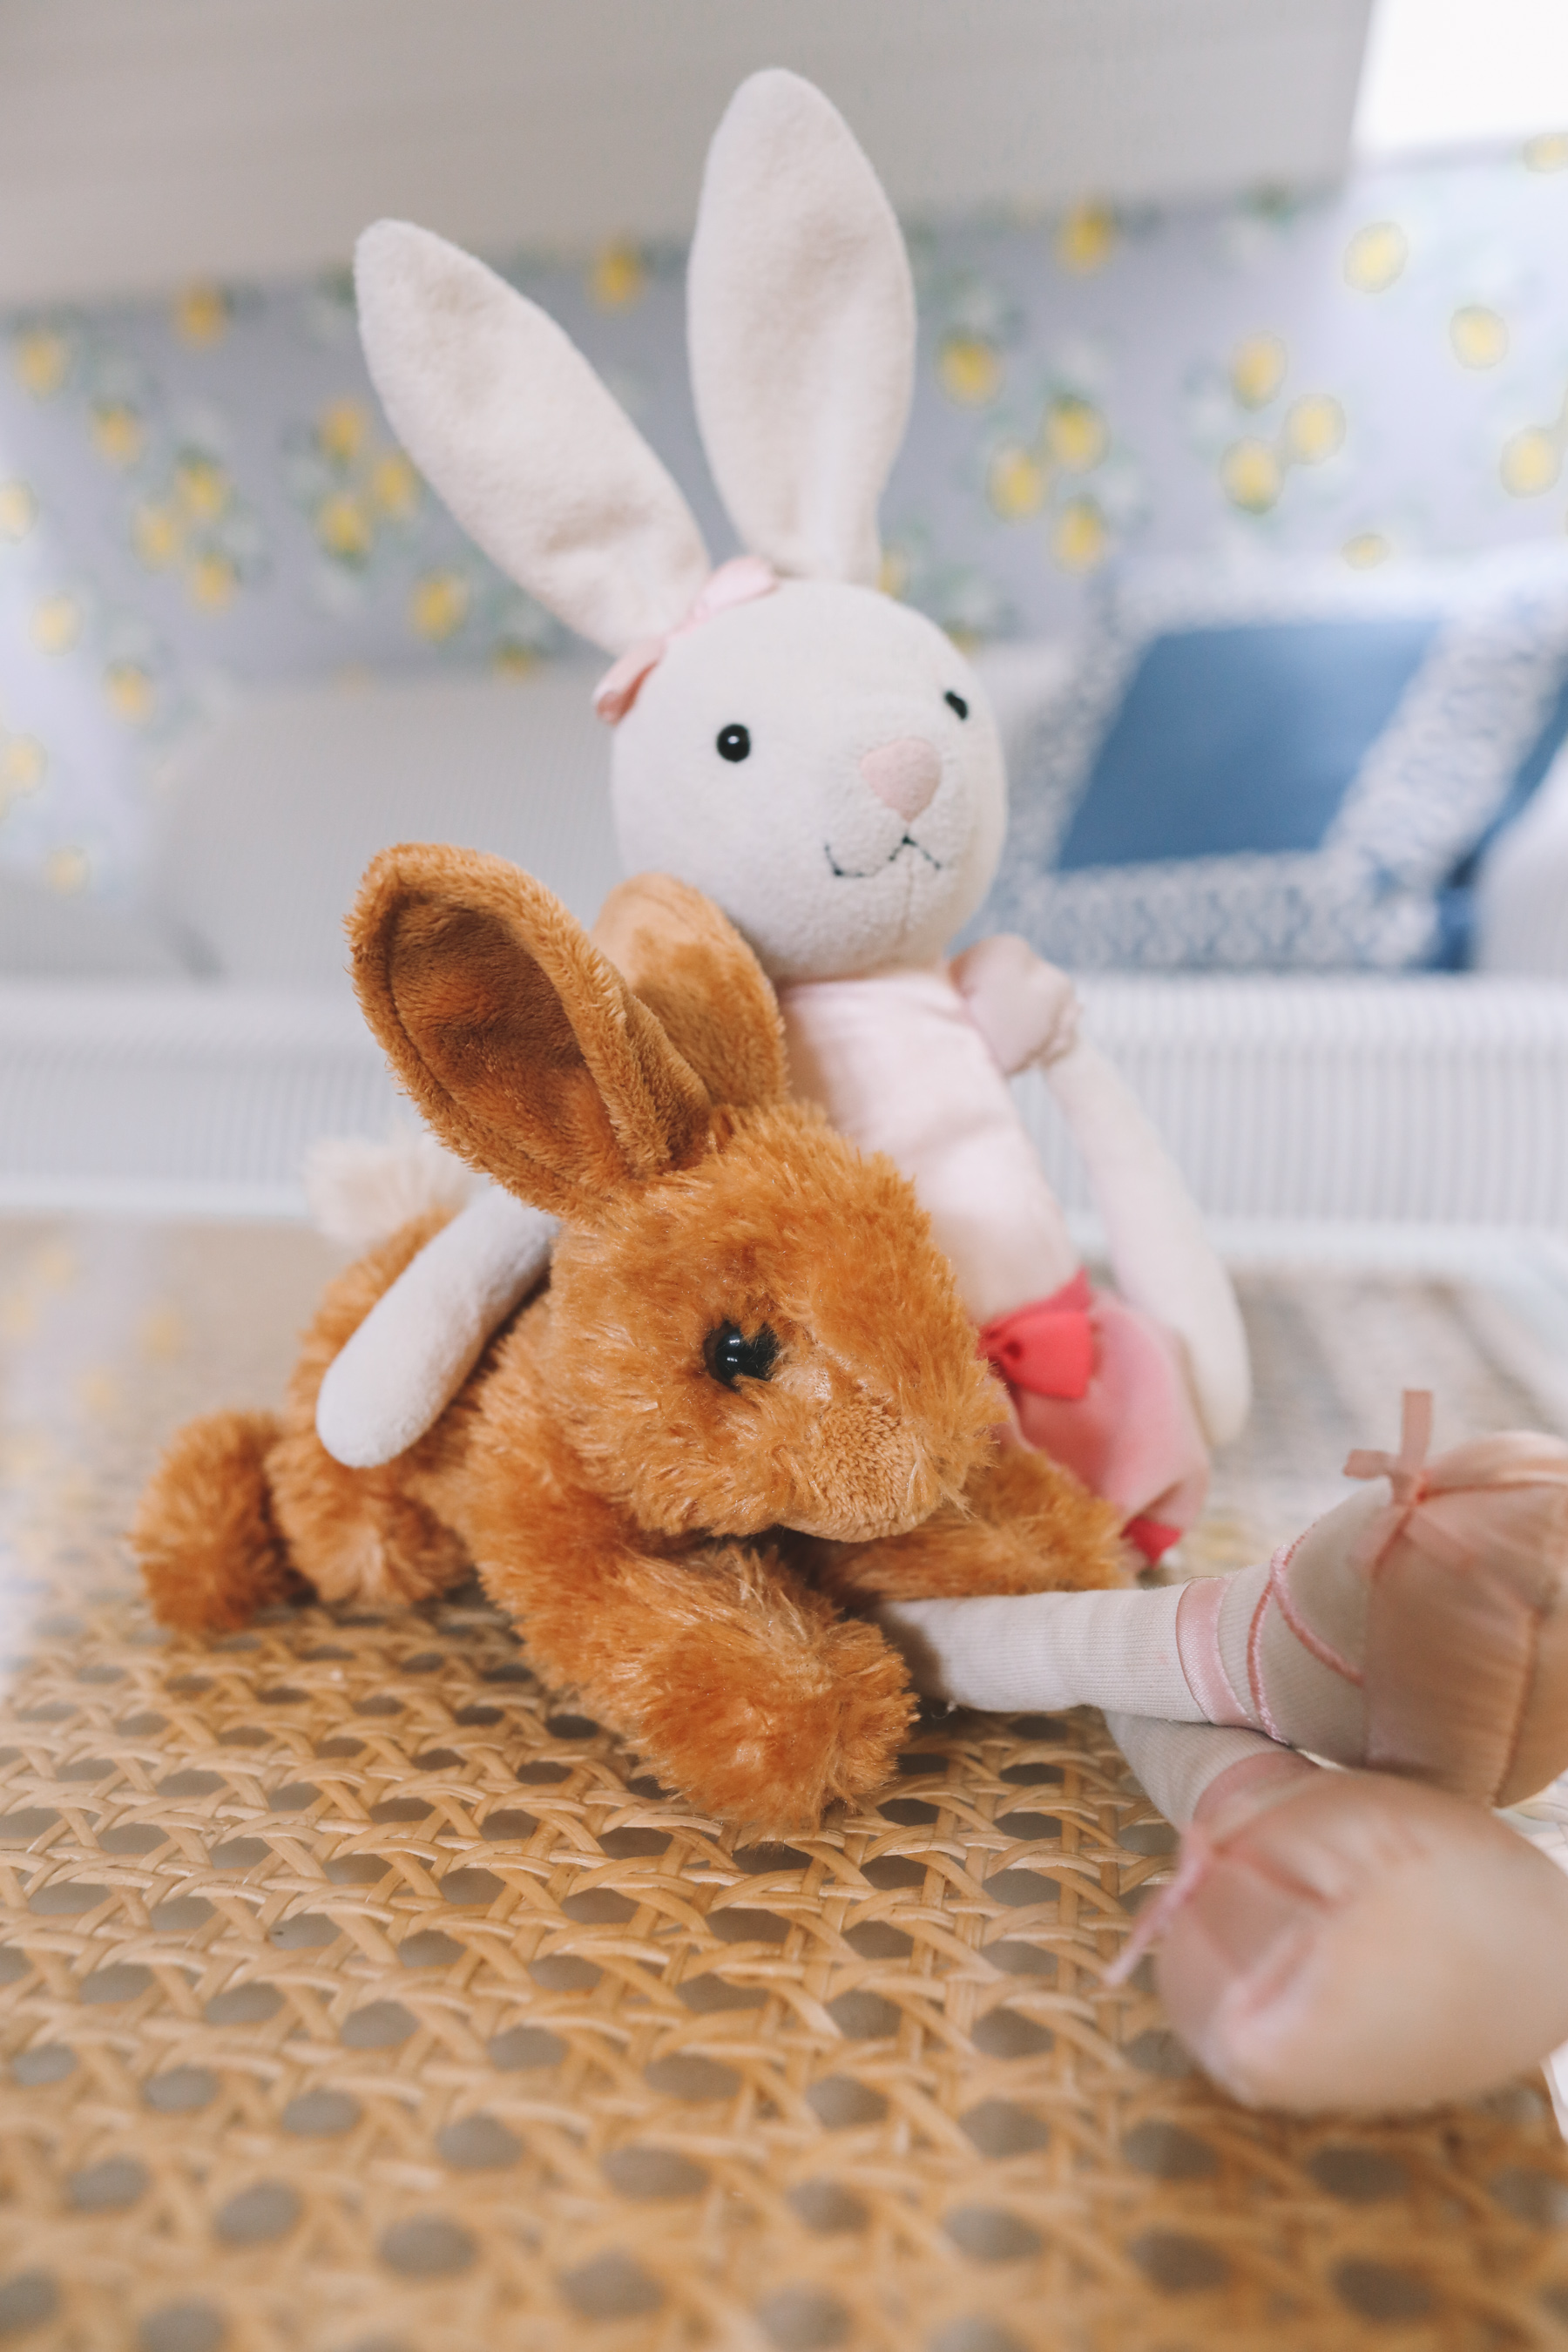 bunnny Favorite Stuffed Animal